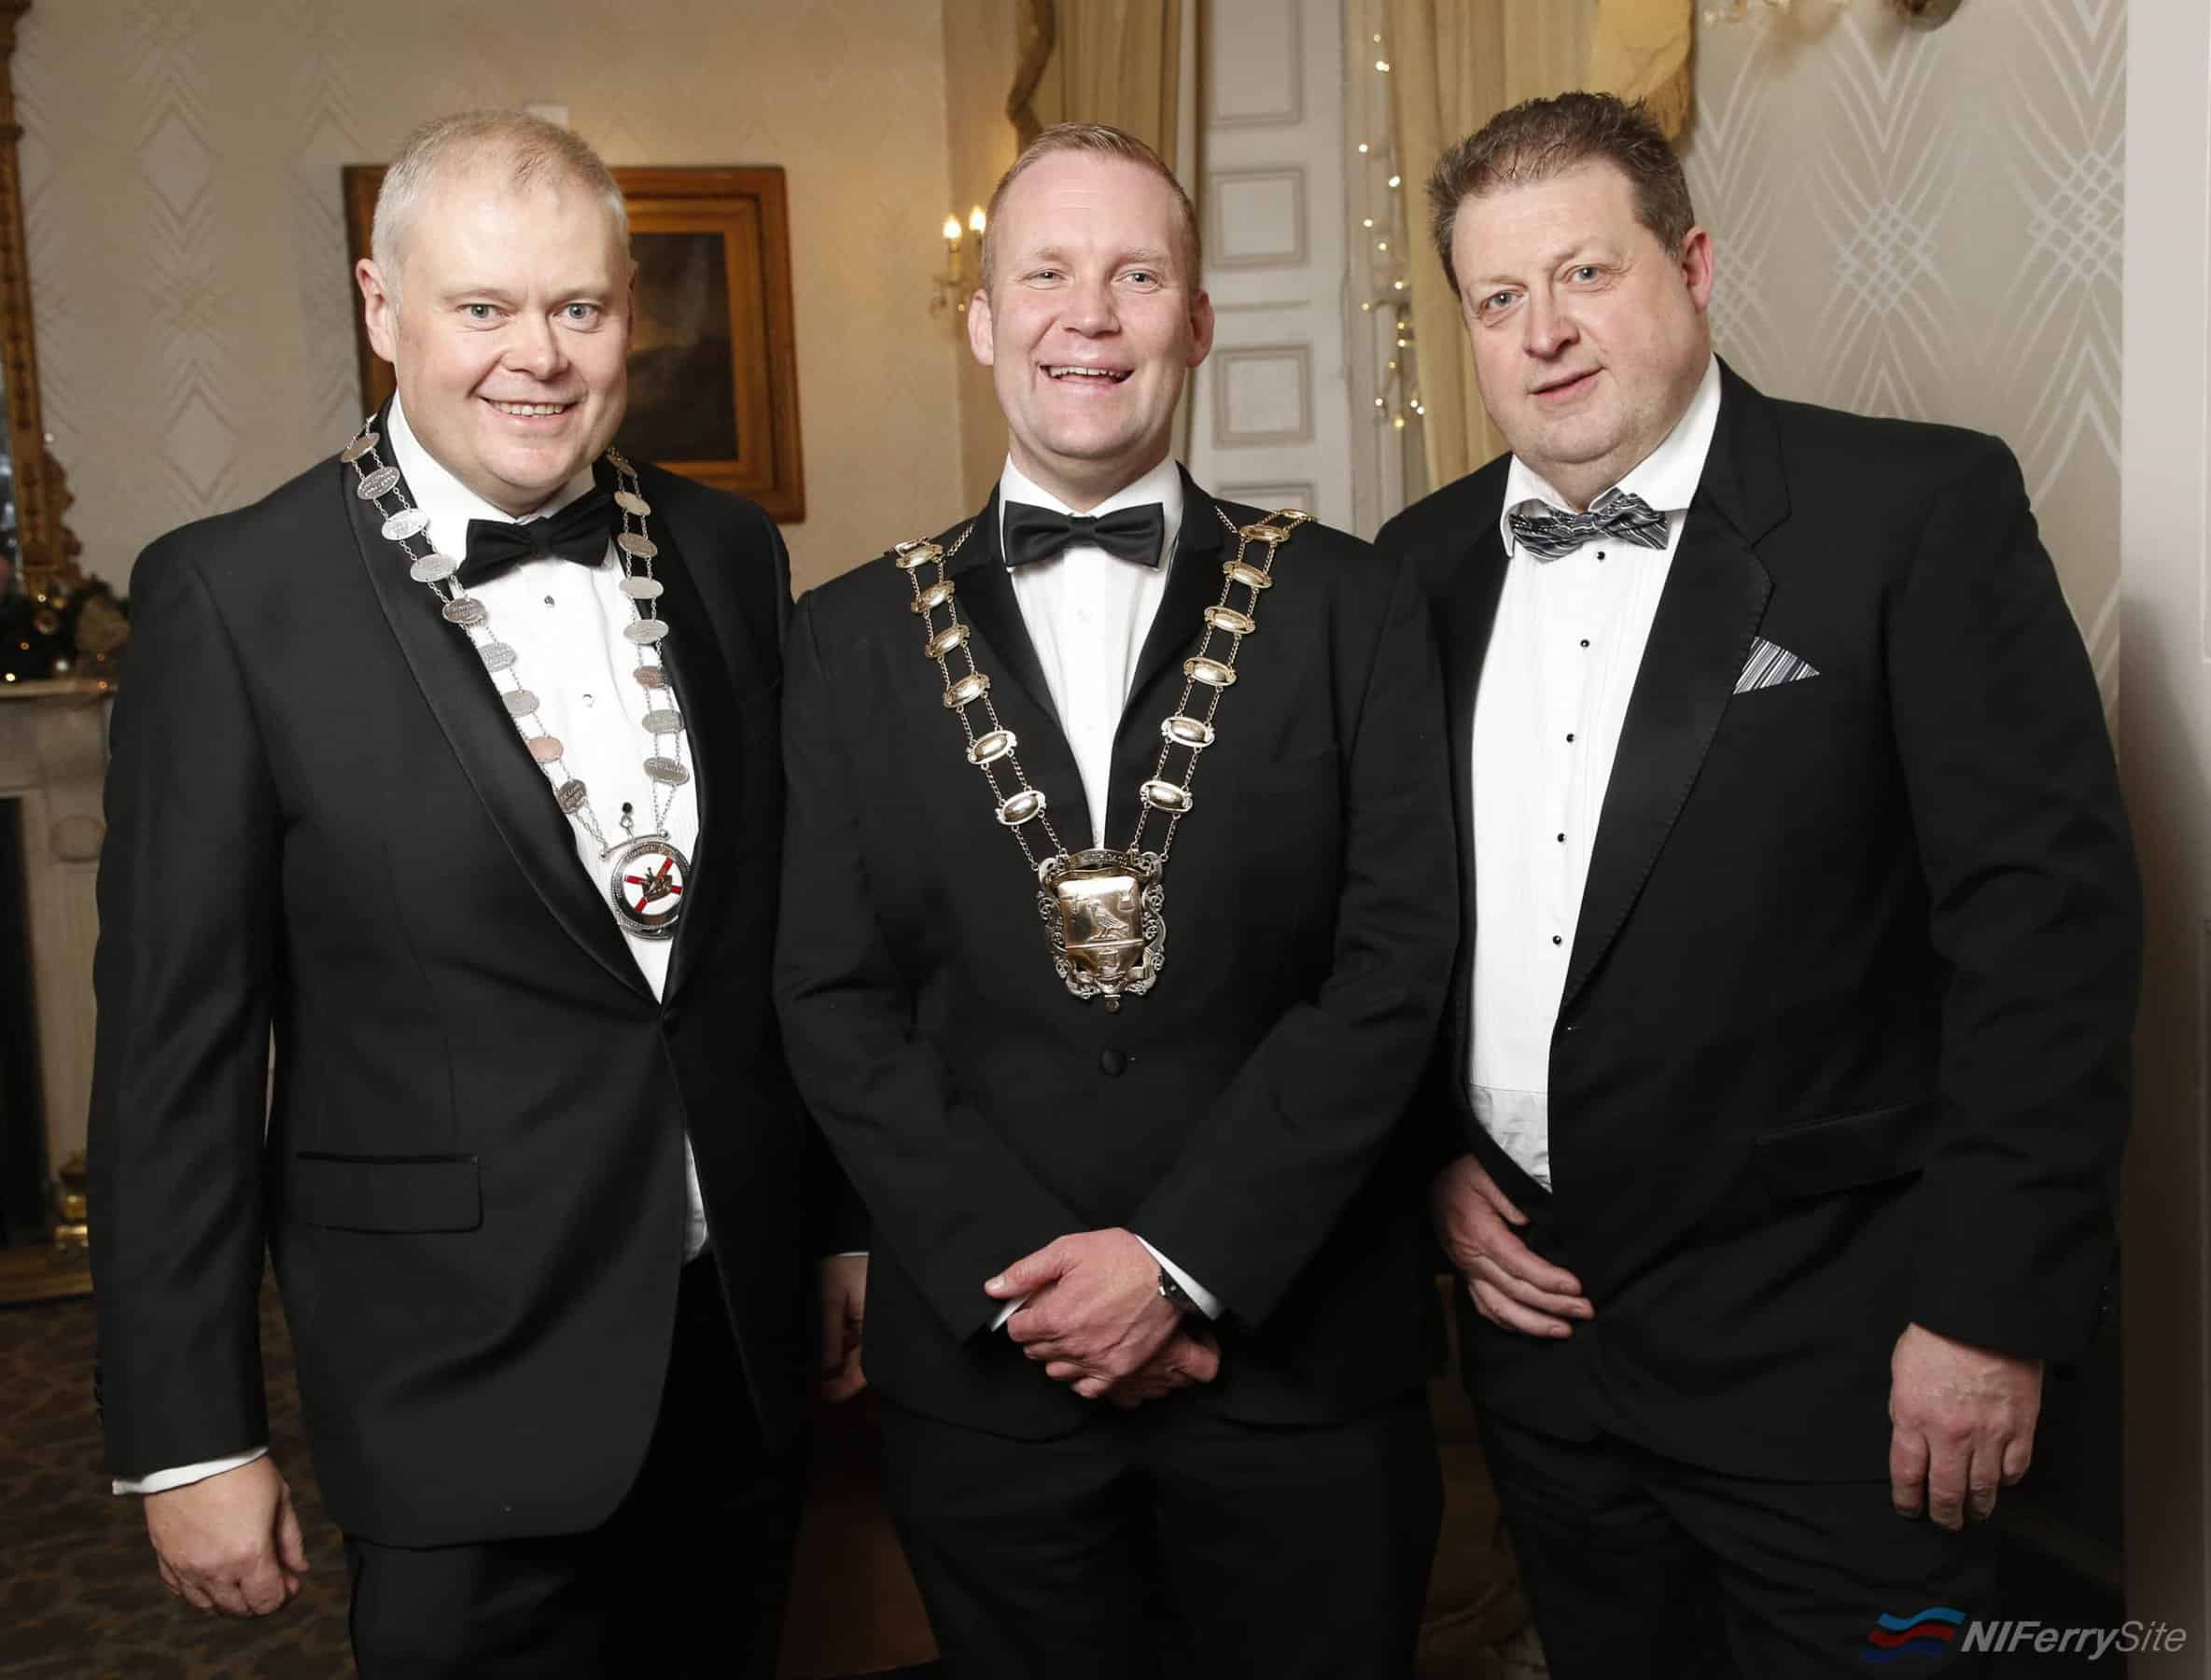 Pictured at the 2019 Marine Ball, organised by the Irish Institute of Master Mariners and the Irish Chamber of Shipping, held in the Grand Hotel, Malahide, Co.Dublin. November 2019 are: Andrew Sheen - Managing Director Irish Ferries, Eoghan O'Brien Mayor Of Fingal, Tony Mulcahy - Deputy President IIMM